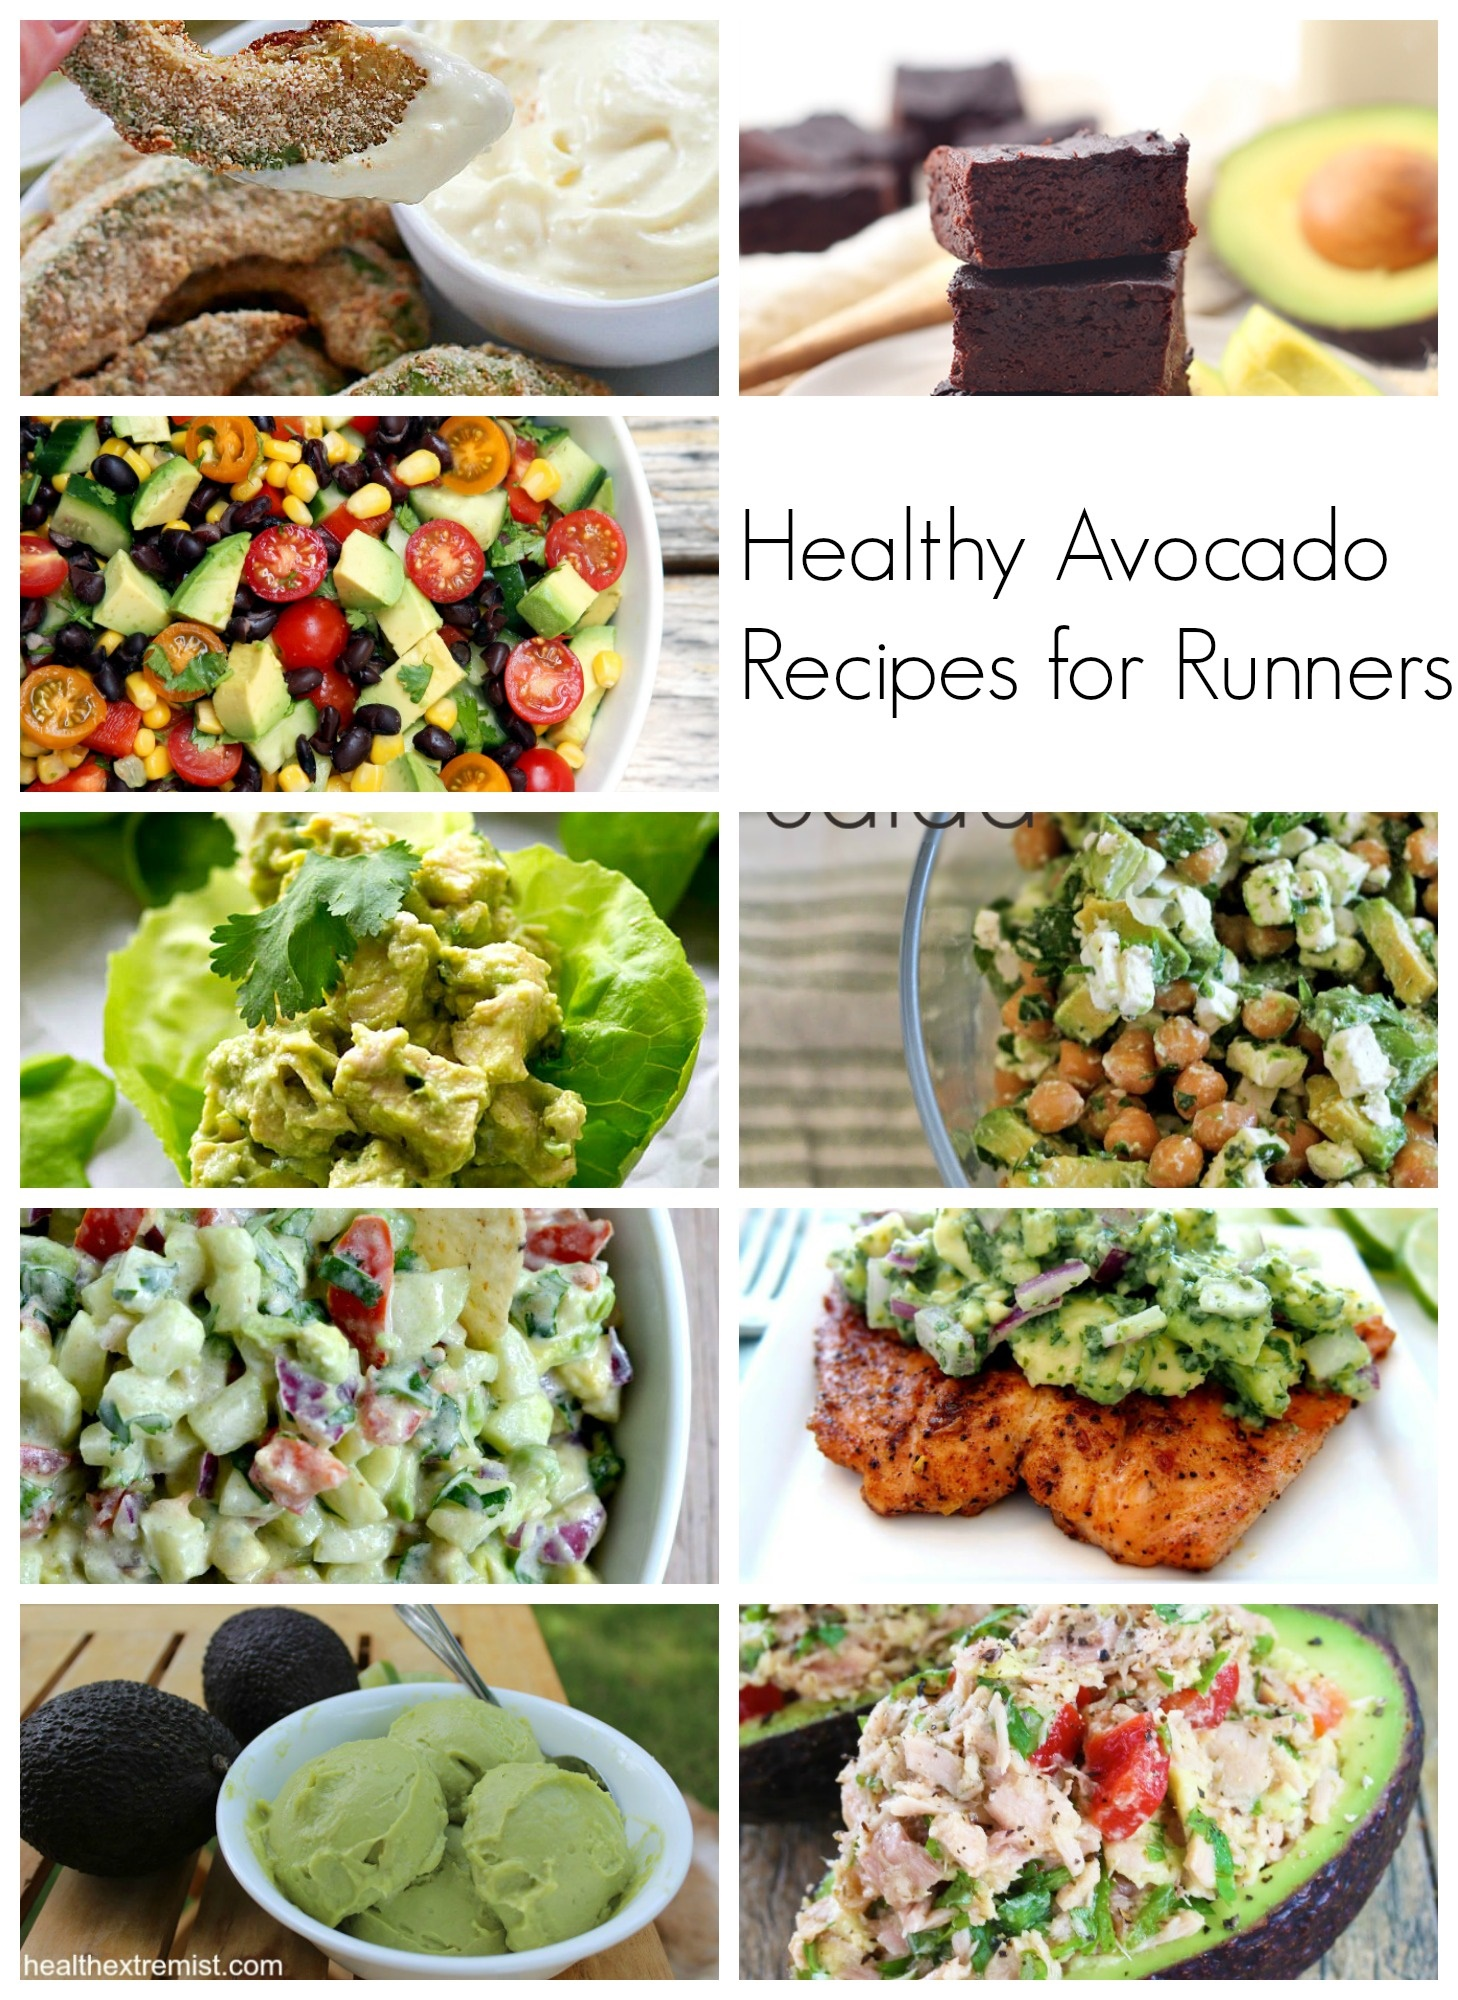 Healthy Avocado Snacks